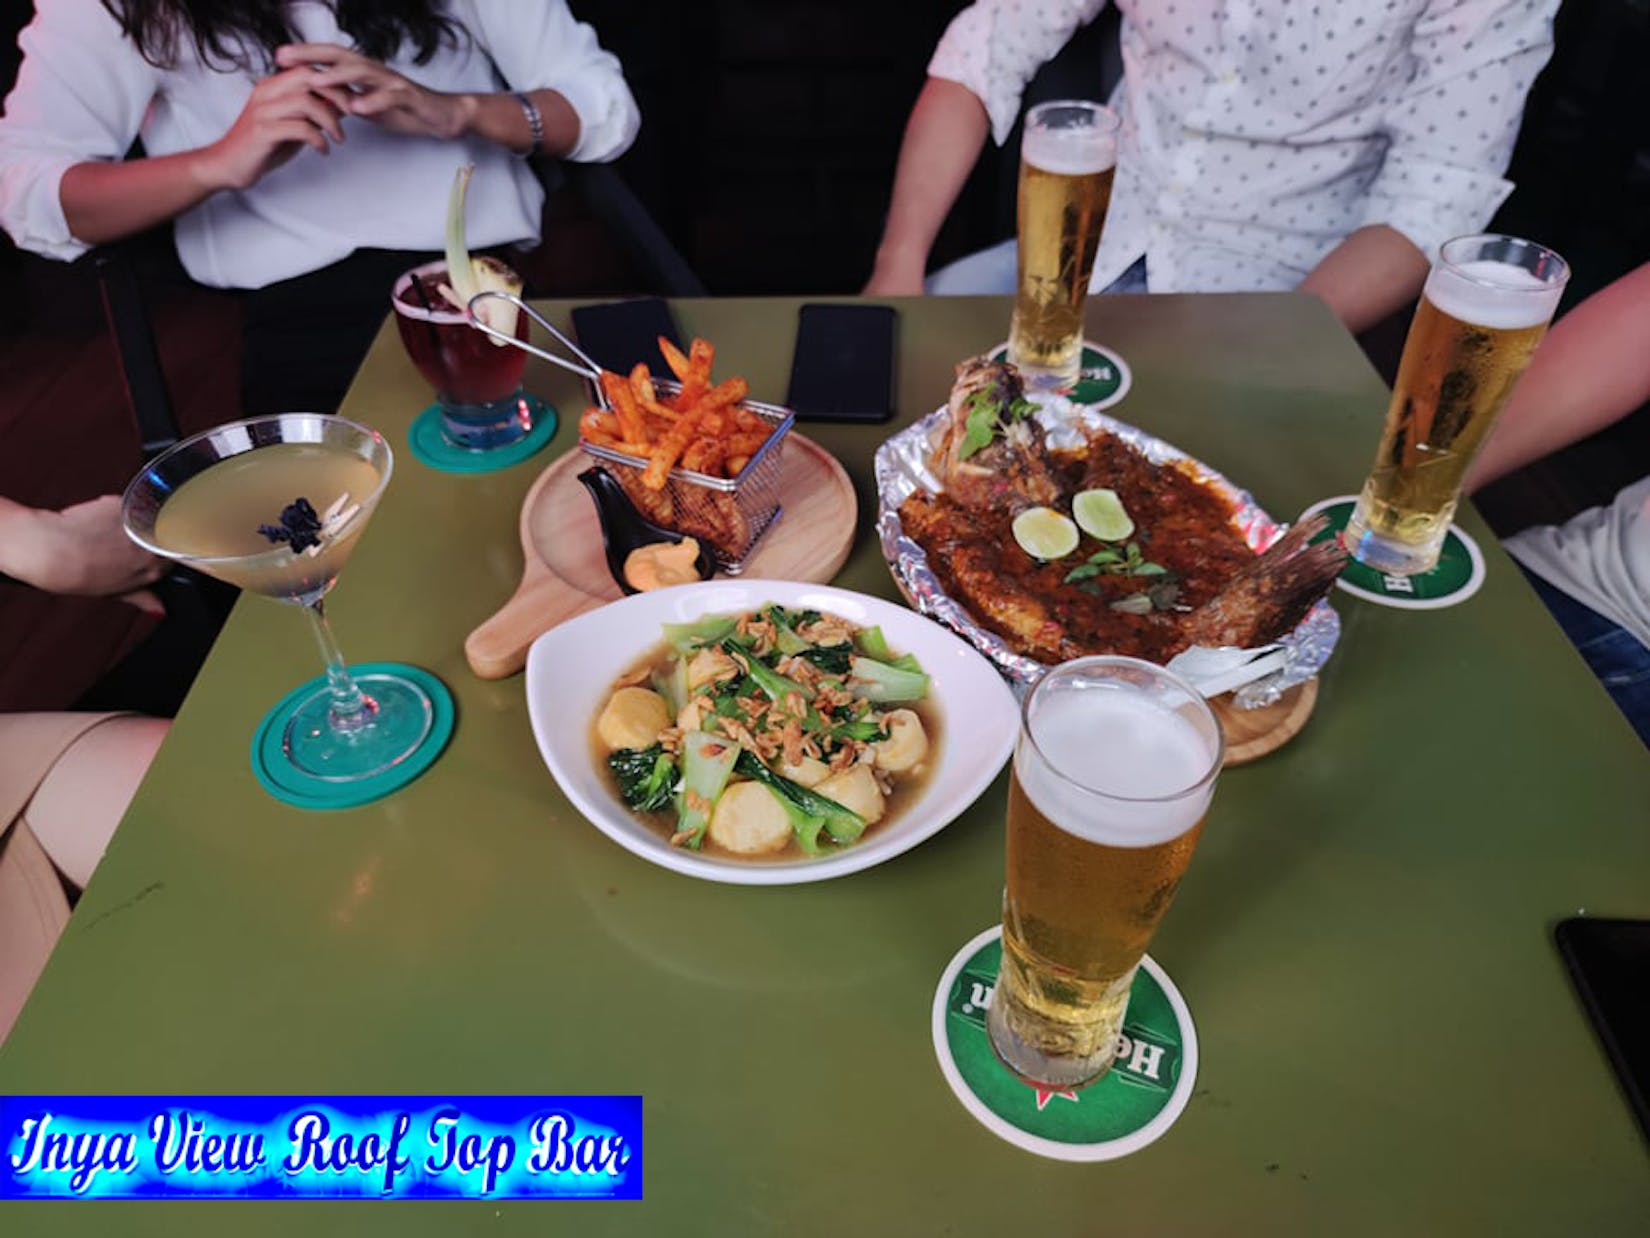 Inya View Hotel and Roof Top Bar | yathar